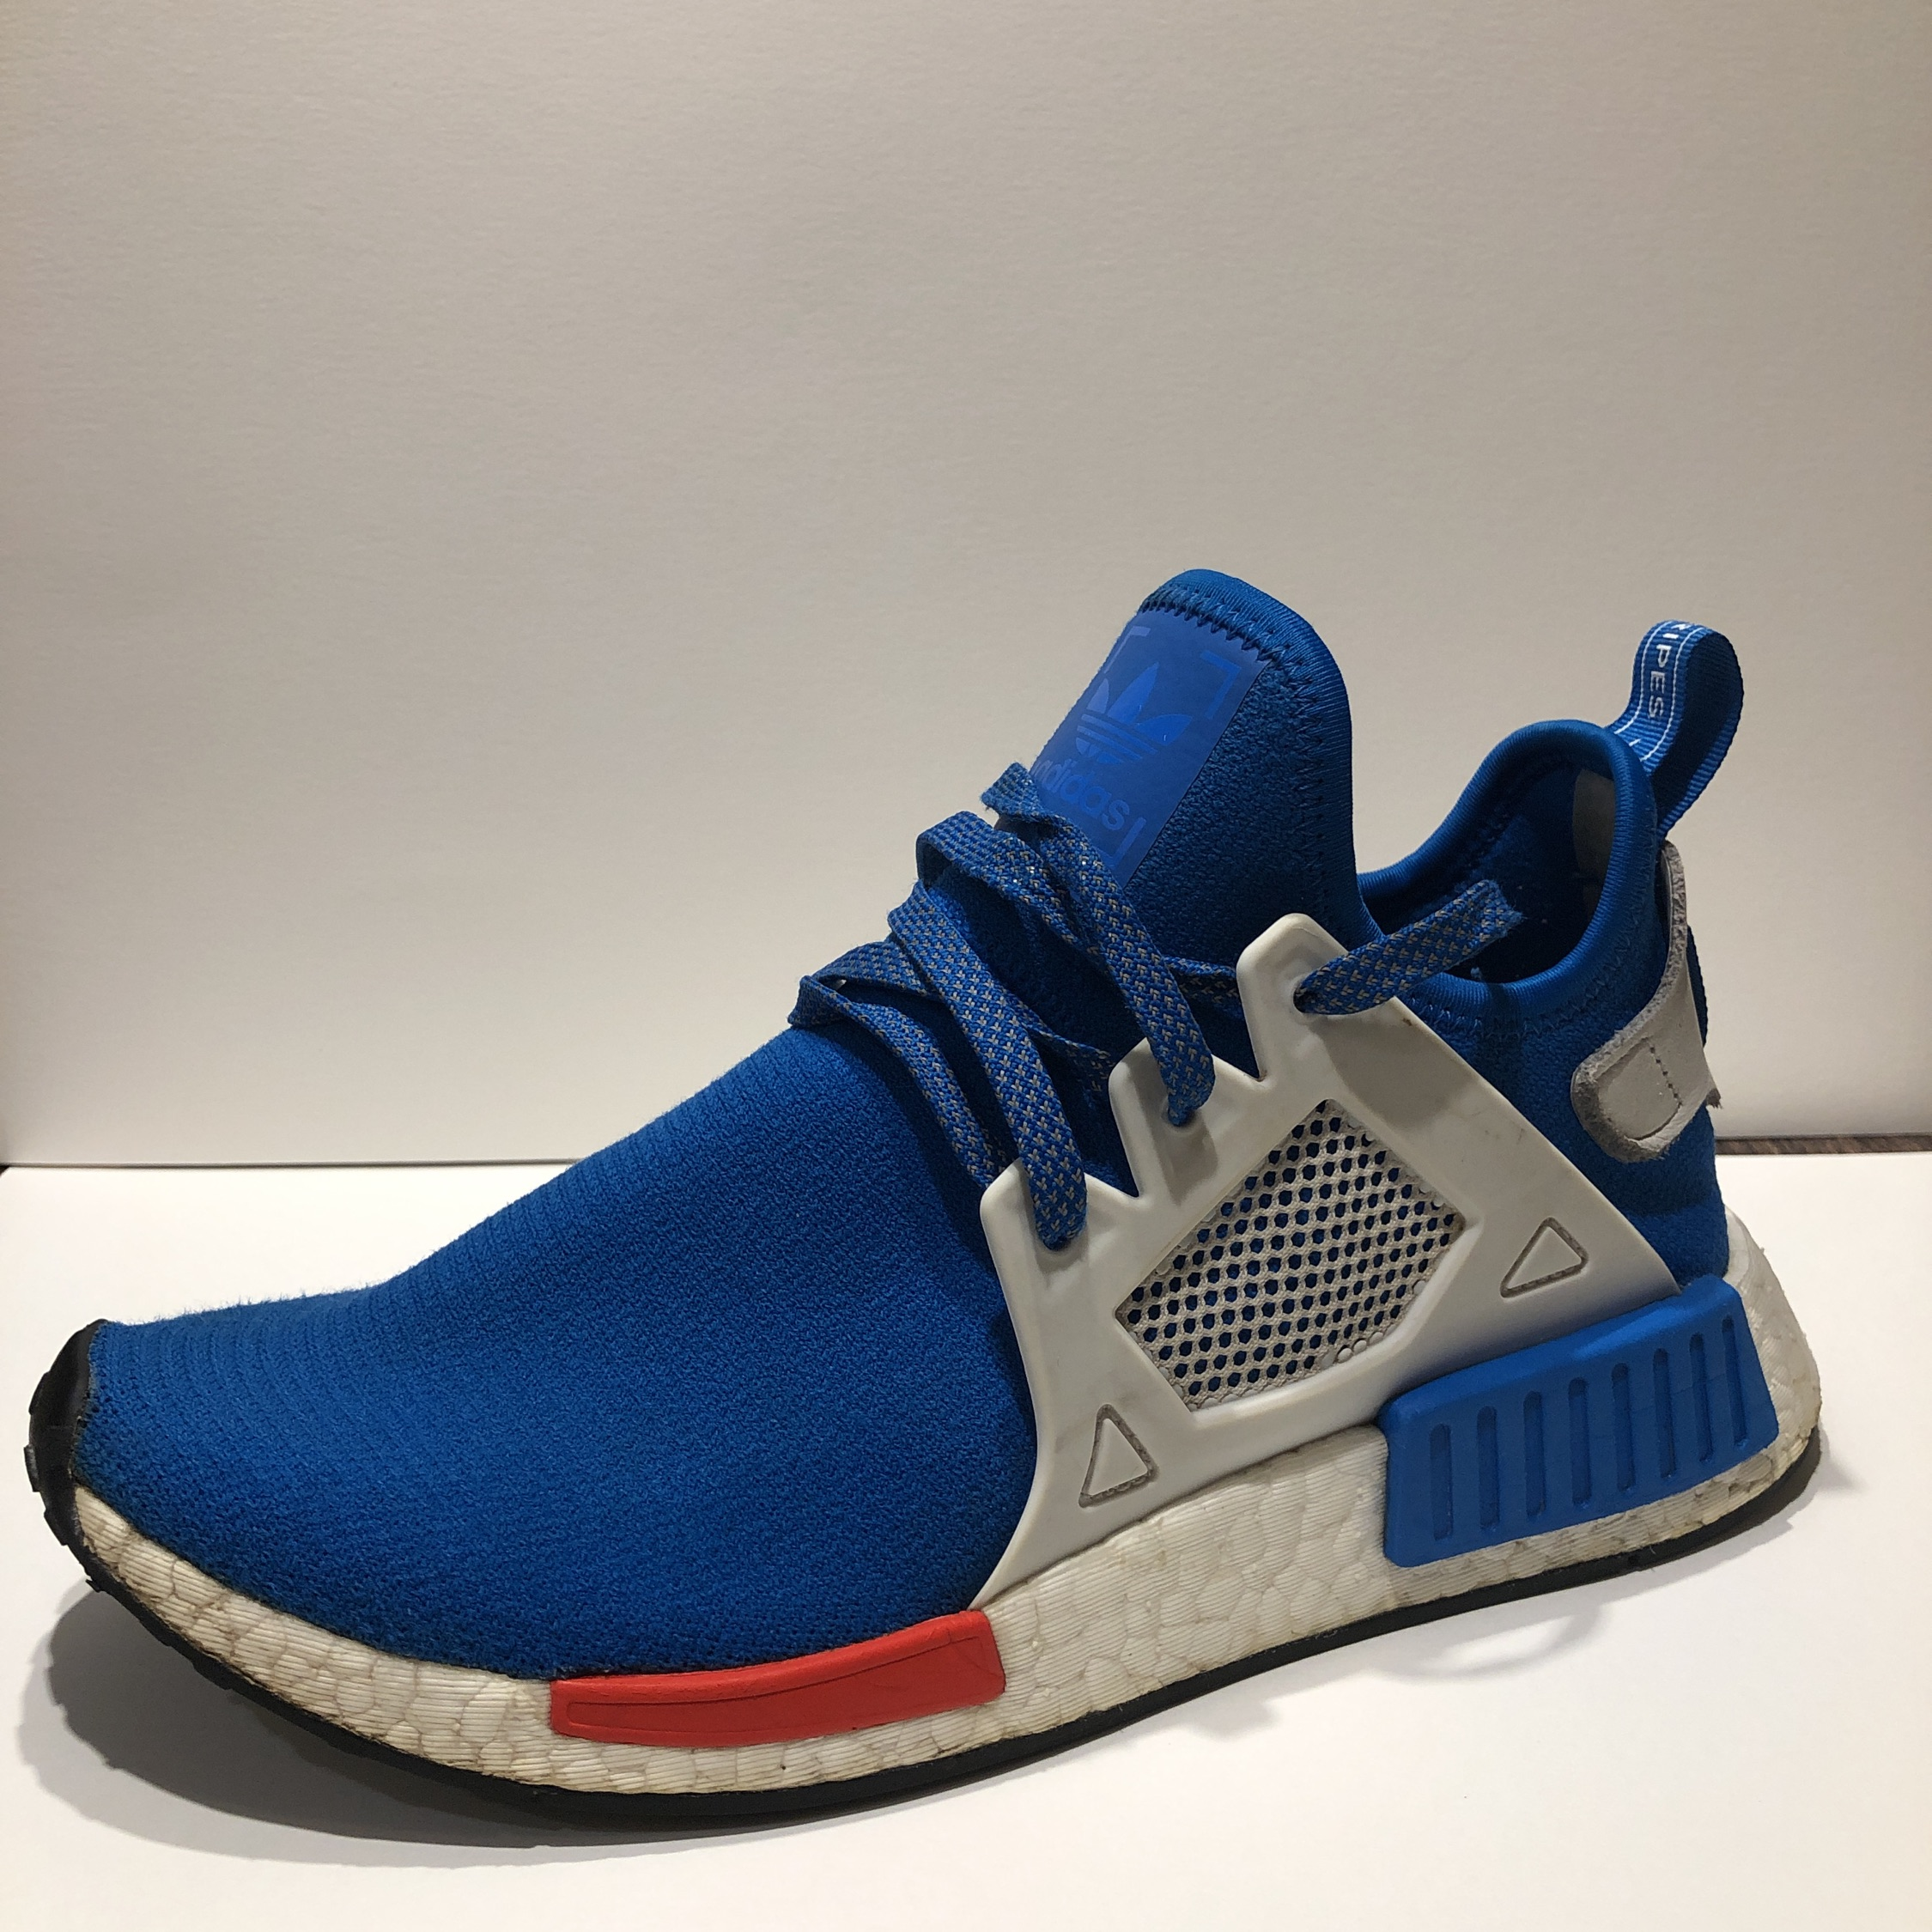 brand new 2ba63 d2e4f Adidas Nmd Xr1 Blue White Red